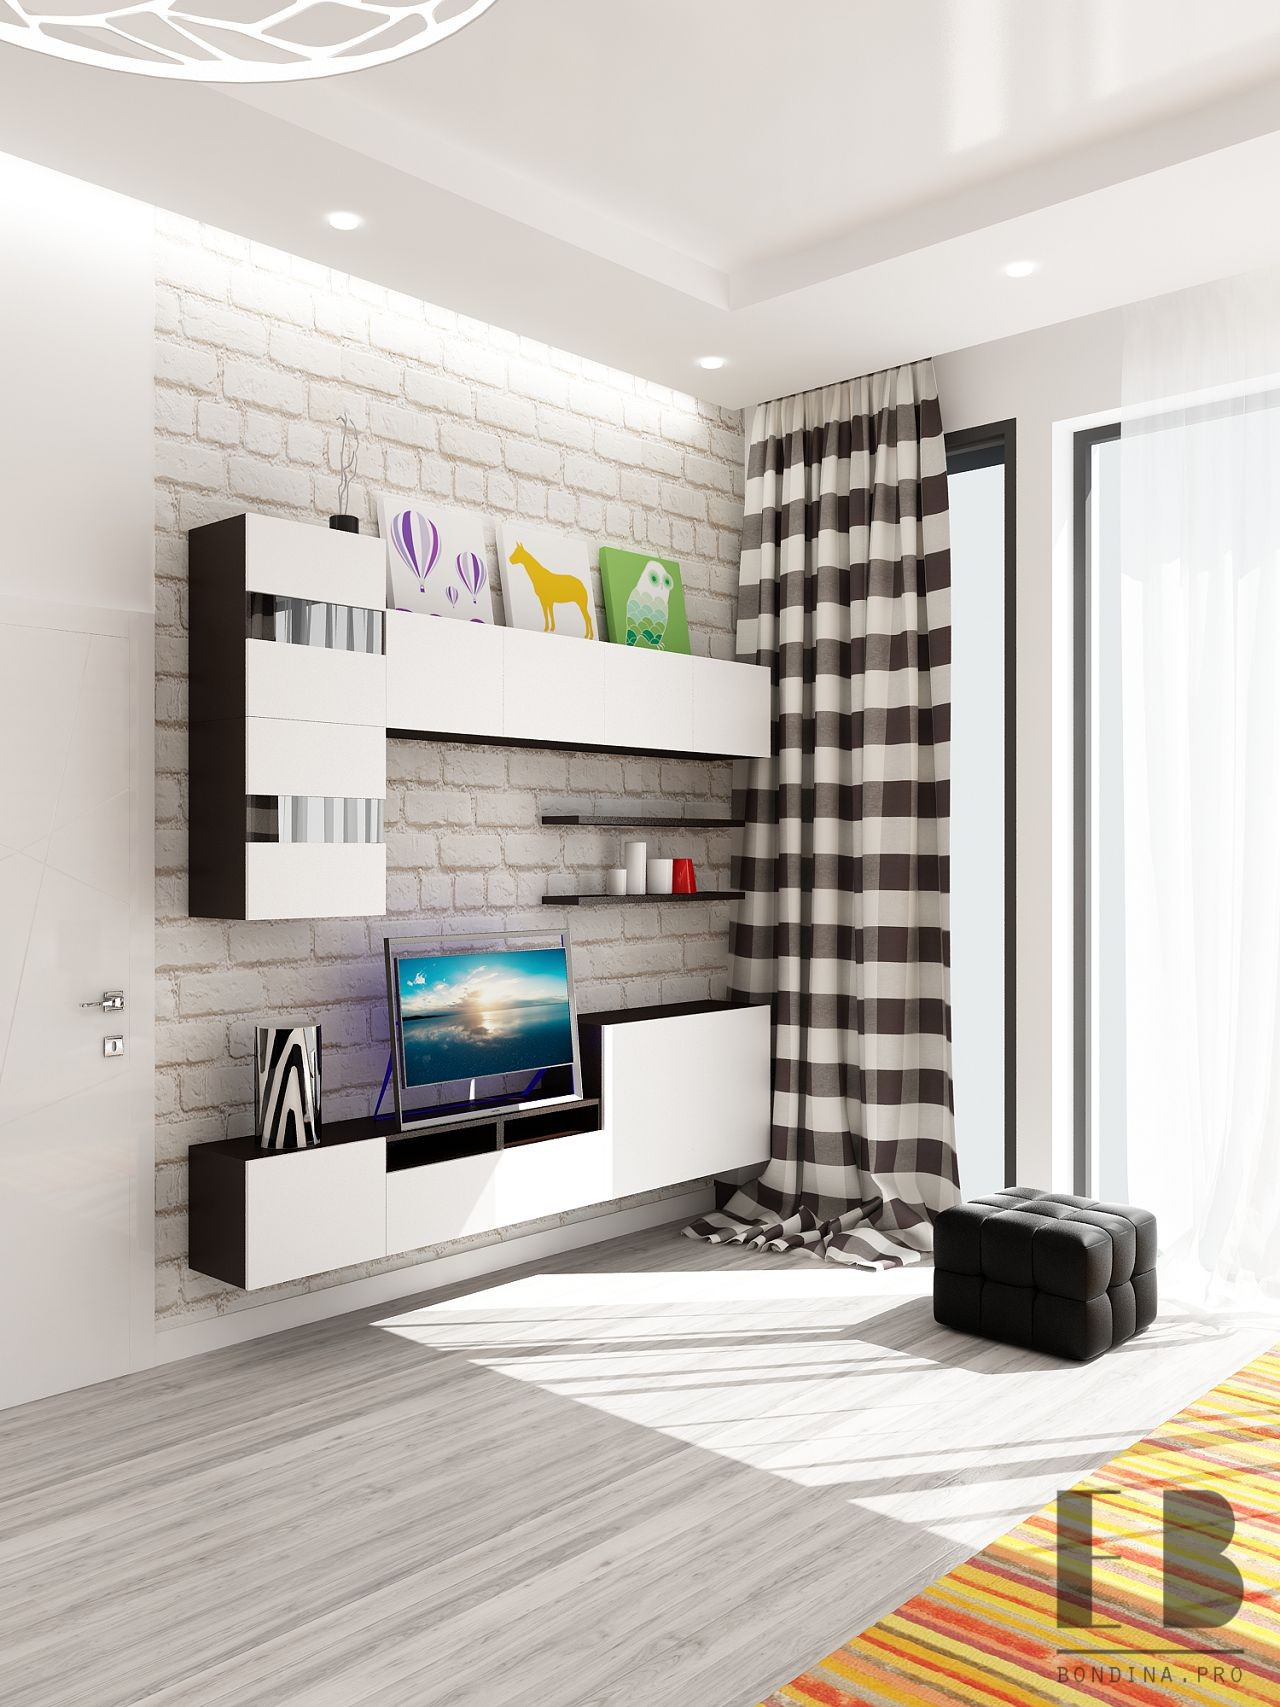 Wall for a drawing room interior design